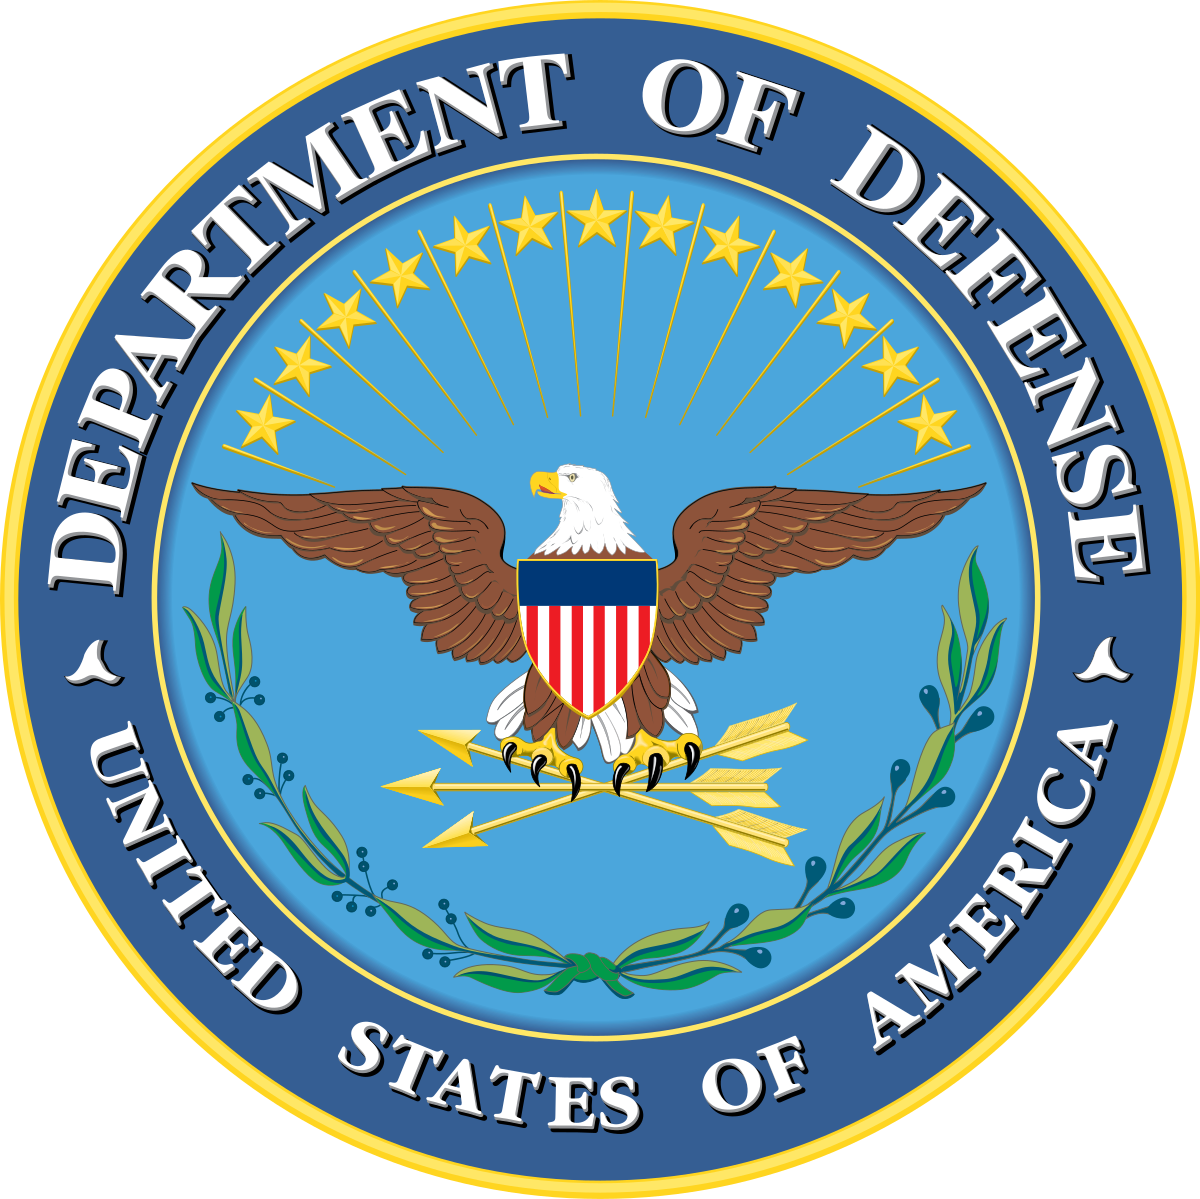 United_States_Department_of_Defense.jpg